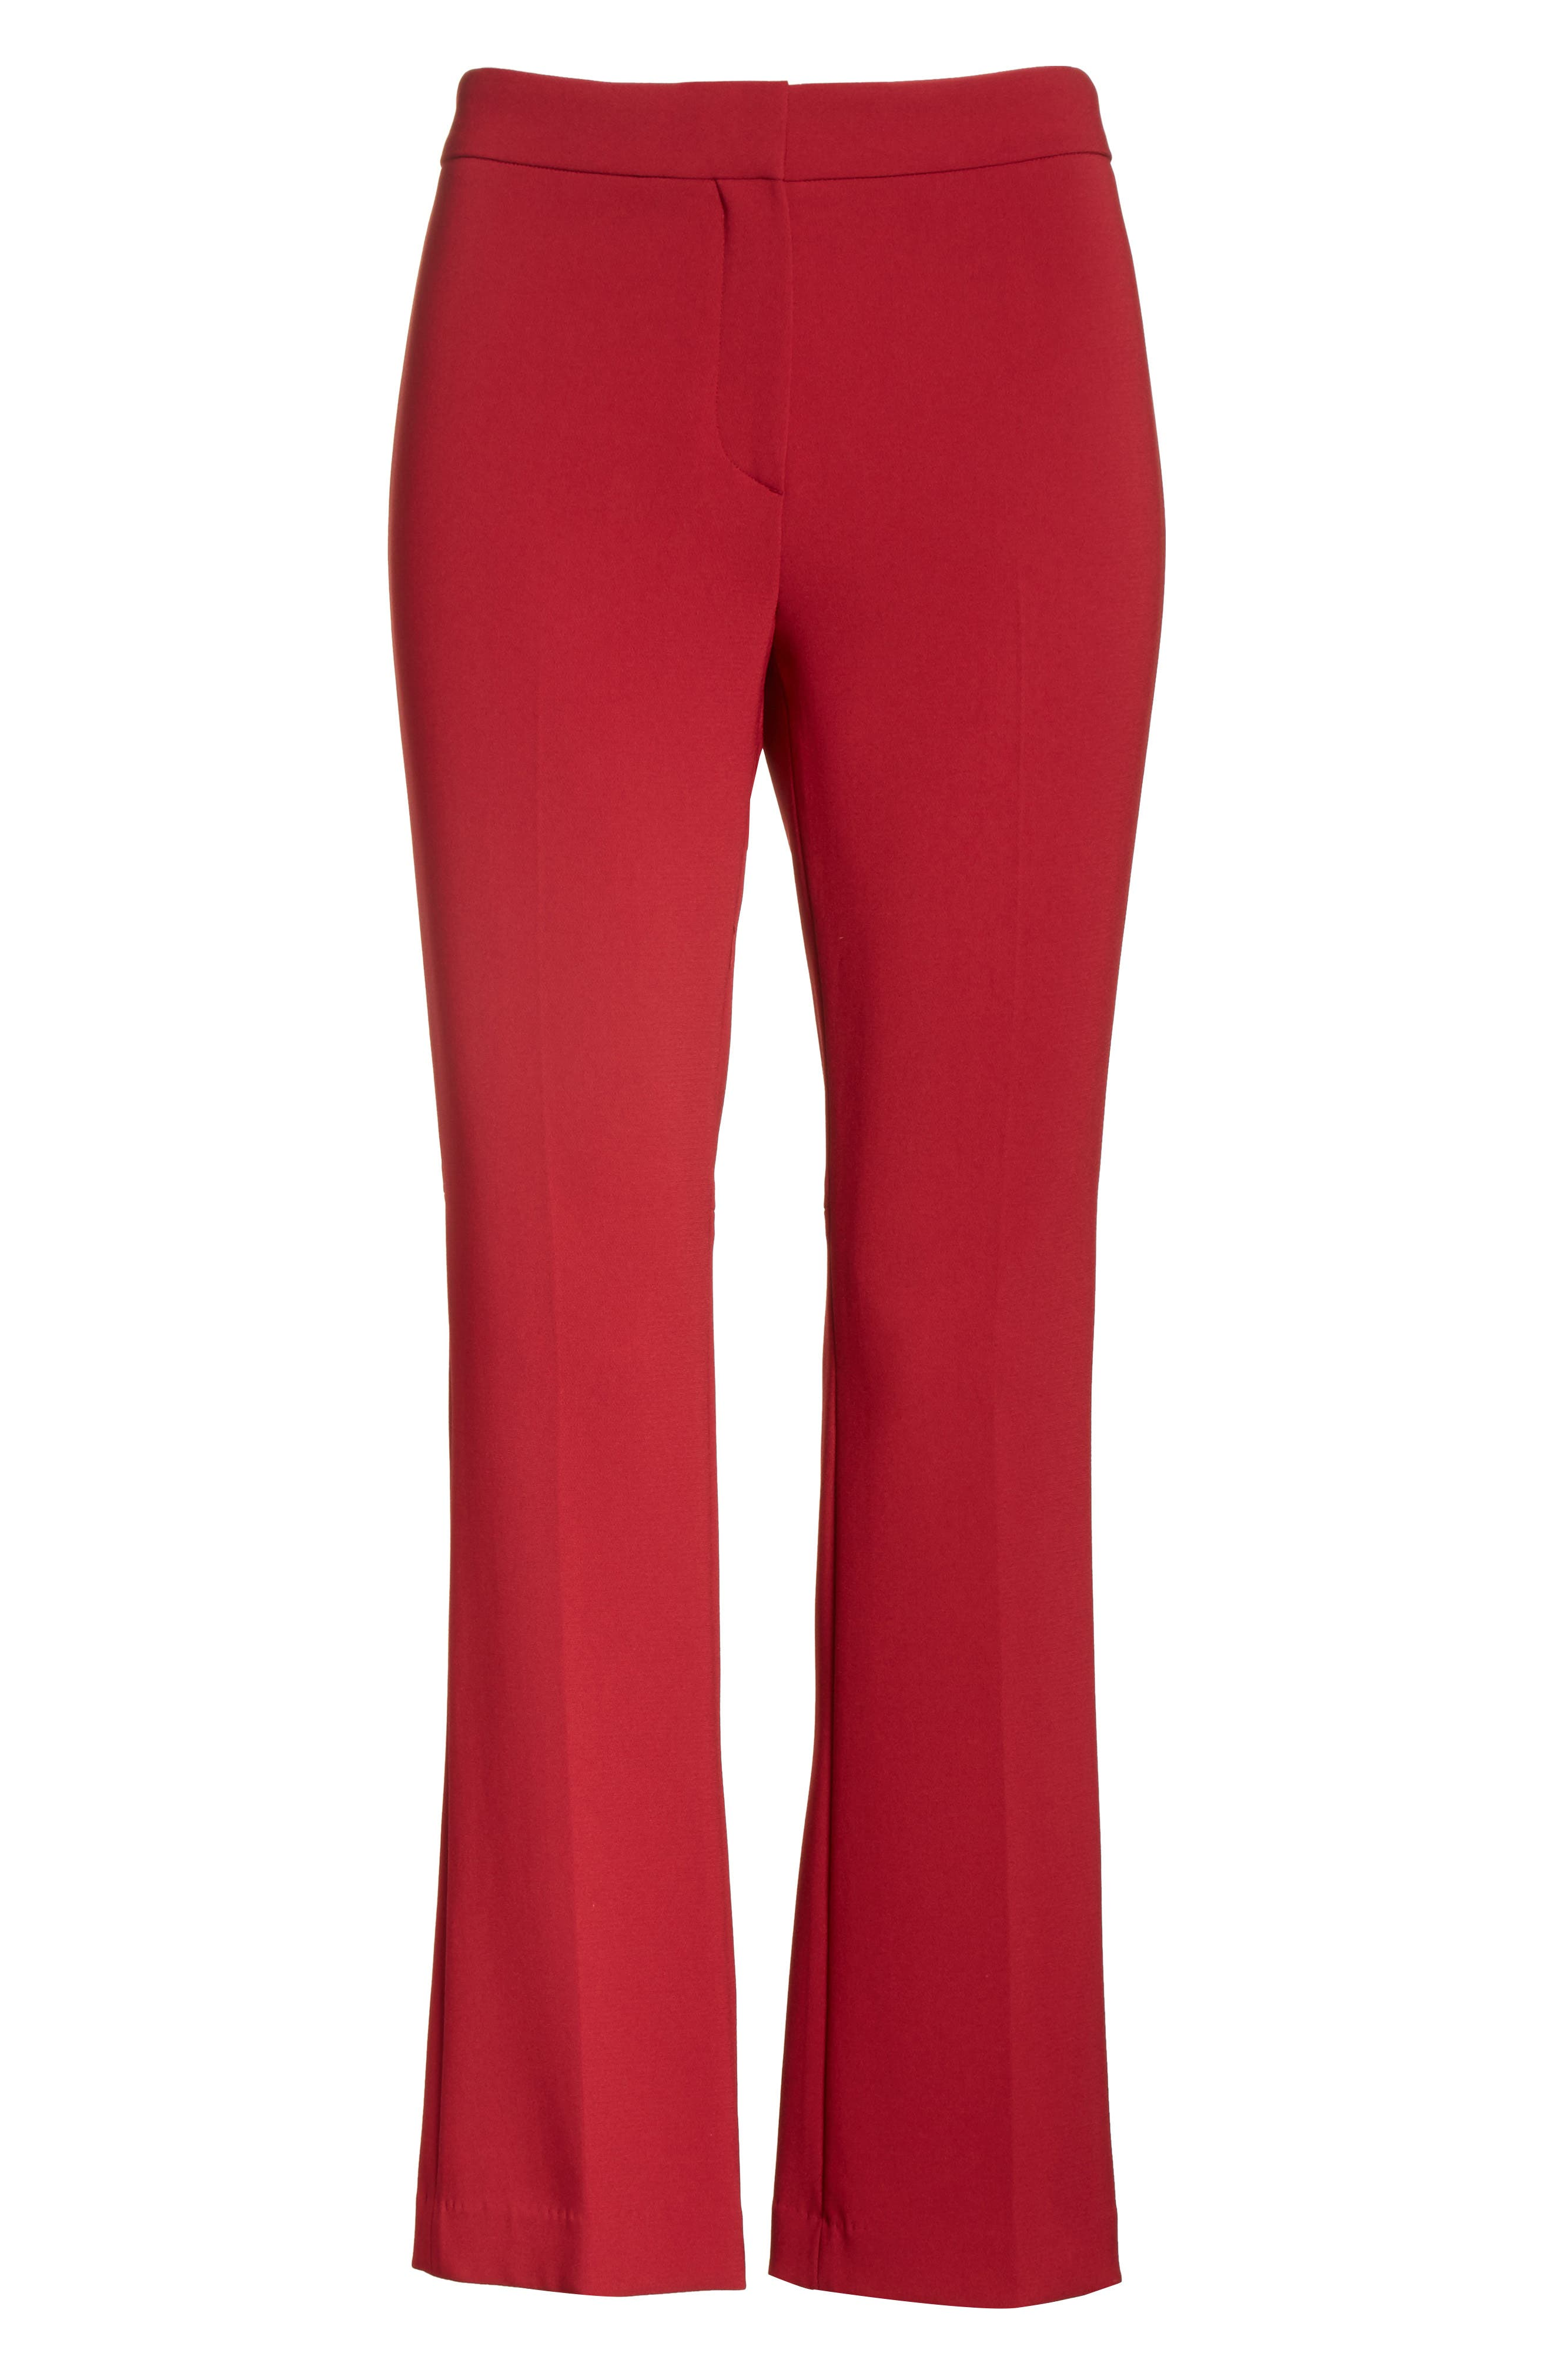 Admiral Crepe Kick Crop Pants,                             Alternate thumbnail 6, color,                             Bright Raspberry